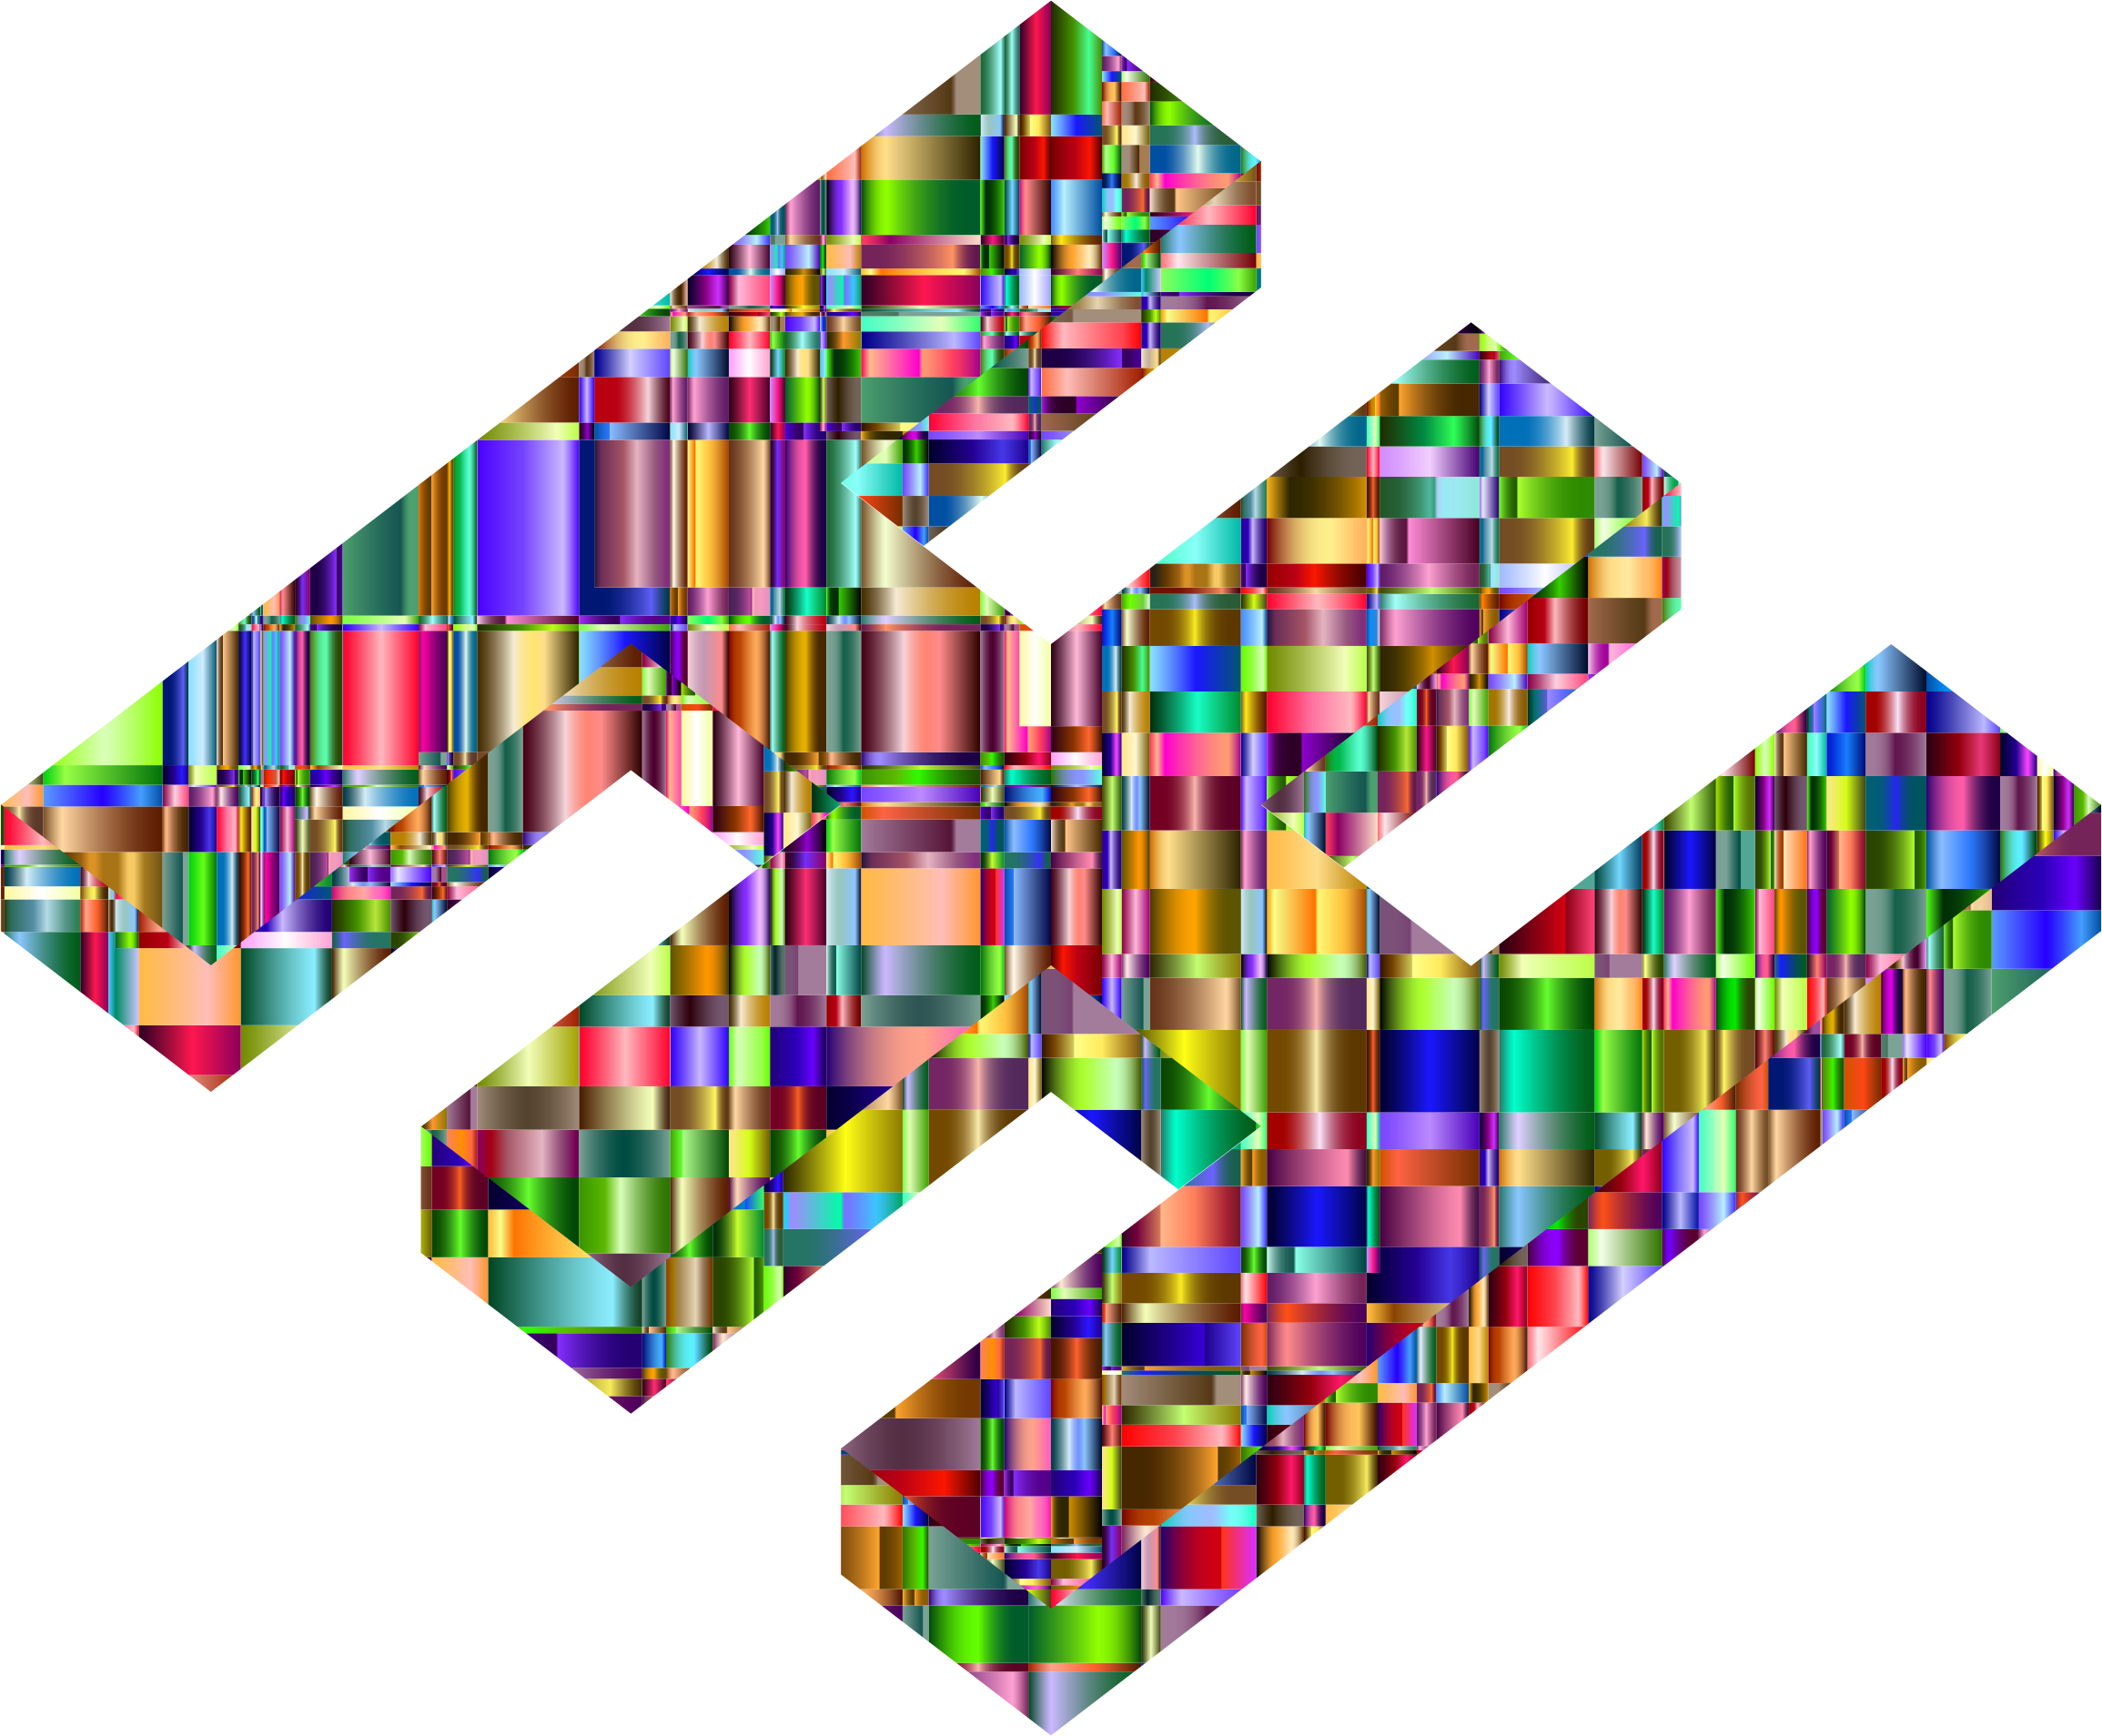 Checkered Chromatic 3D Fabricatorz Logo by GDJ